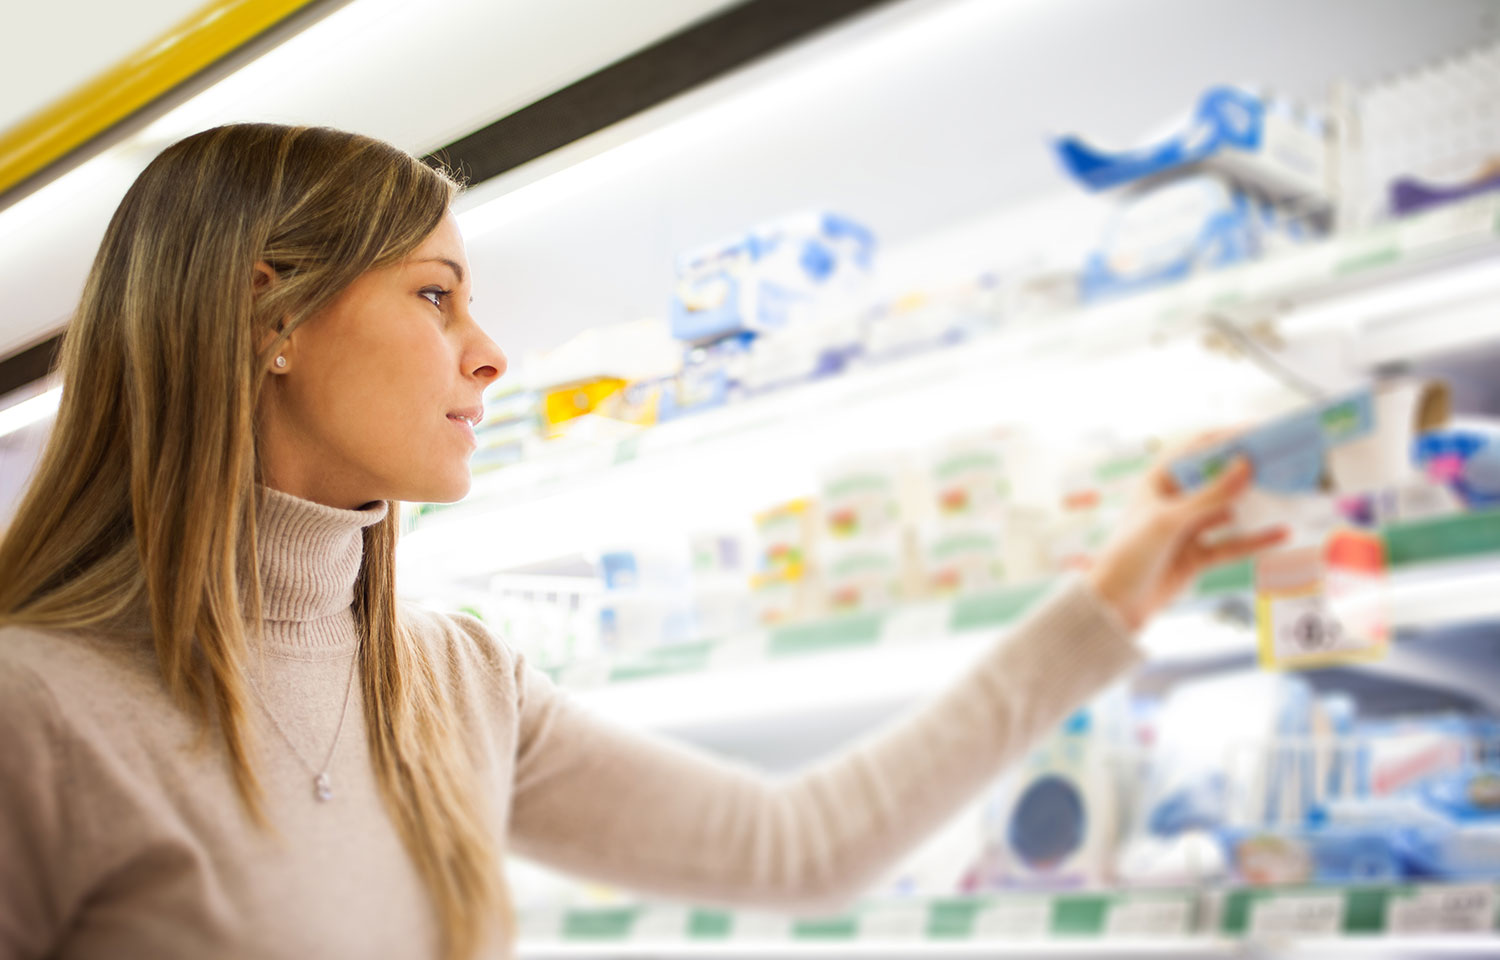 Woman choosing a healthy snack option from a micro-market and vending machine